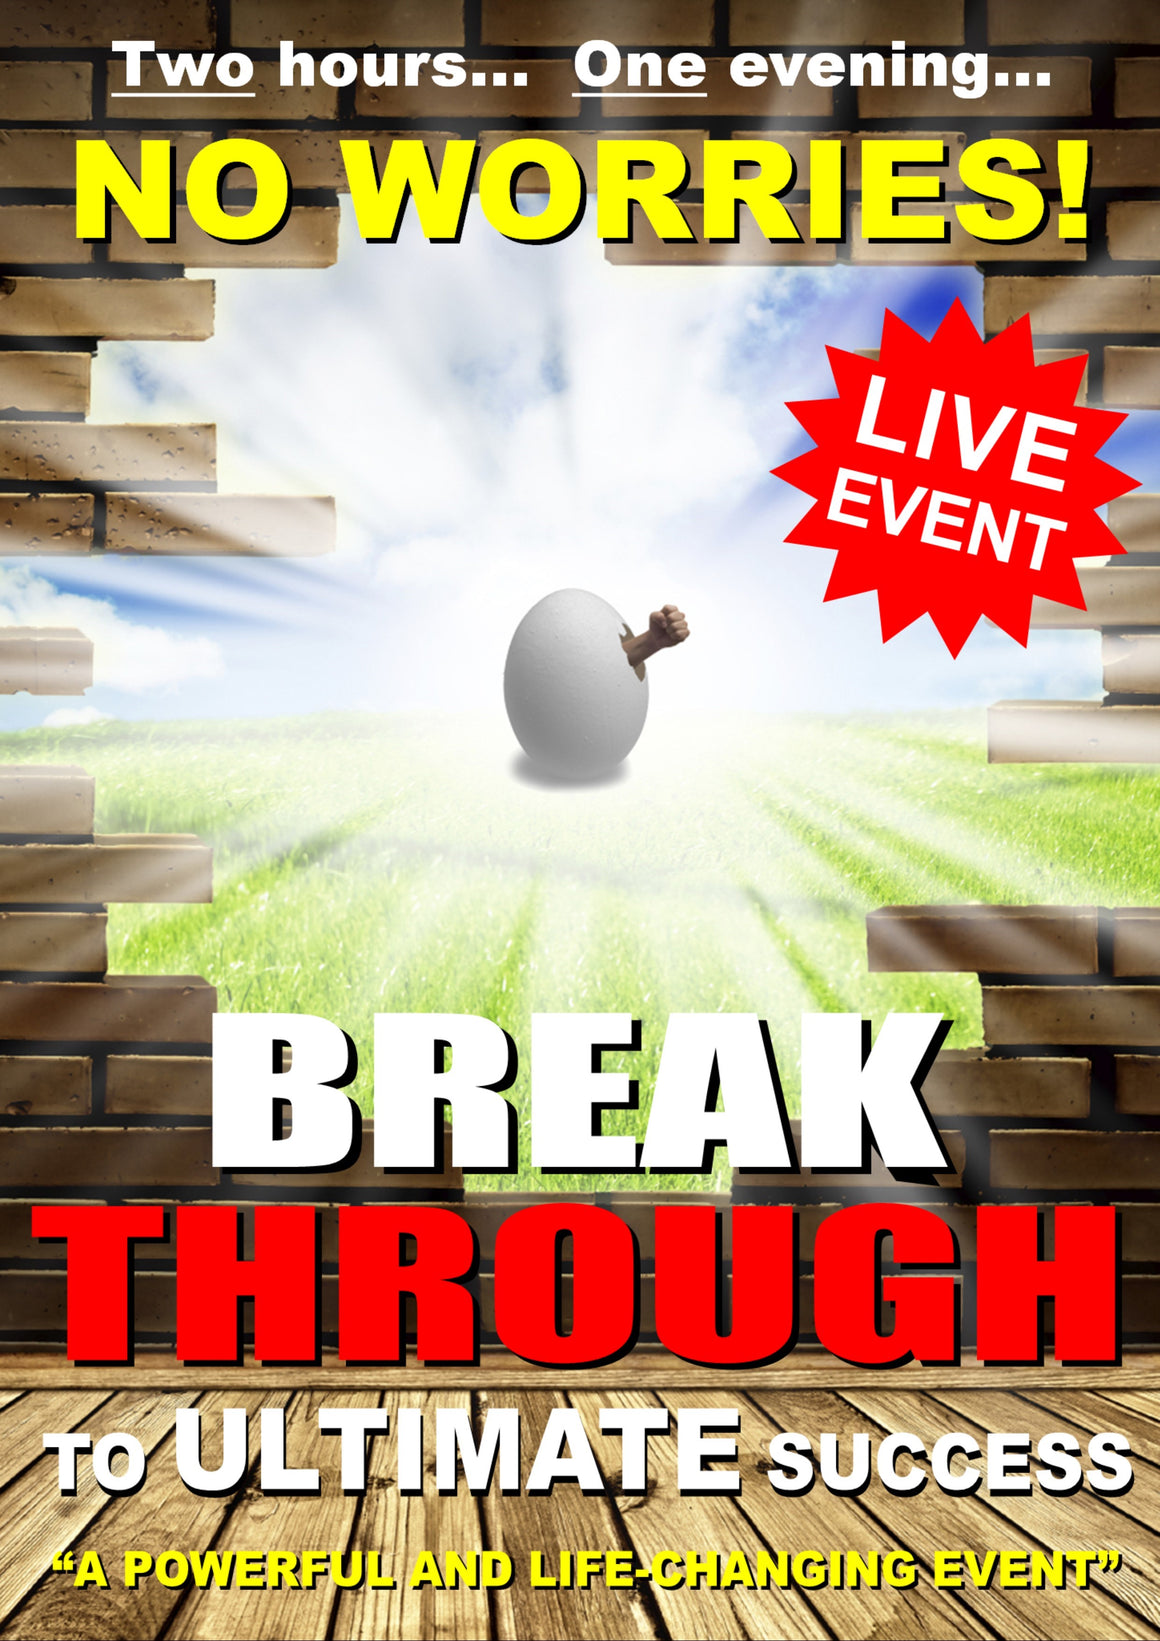 Live Event:  'Break Through to Ultimate Success' evening seminar (between two and three hours)